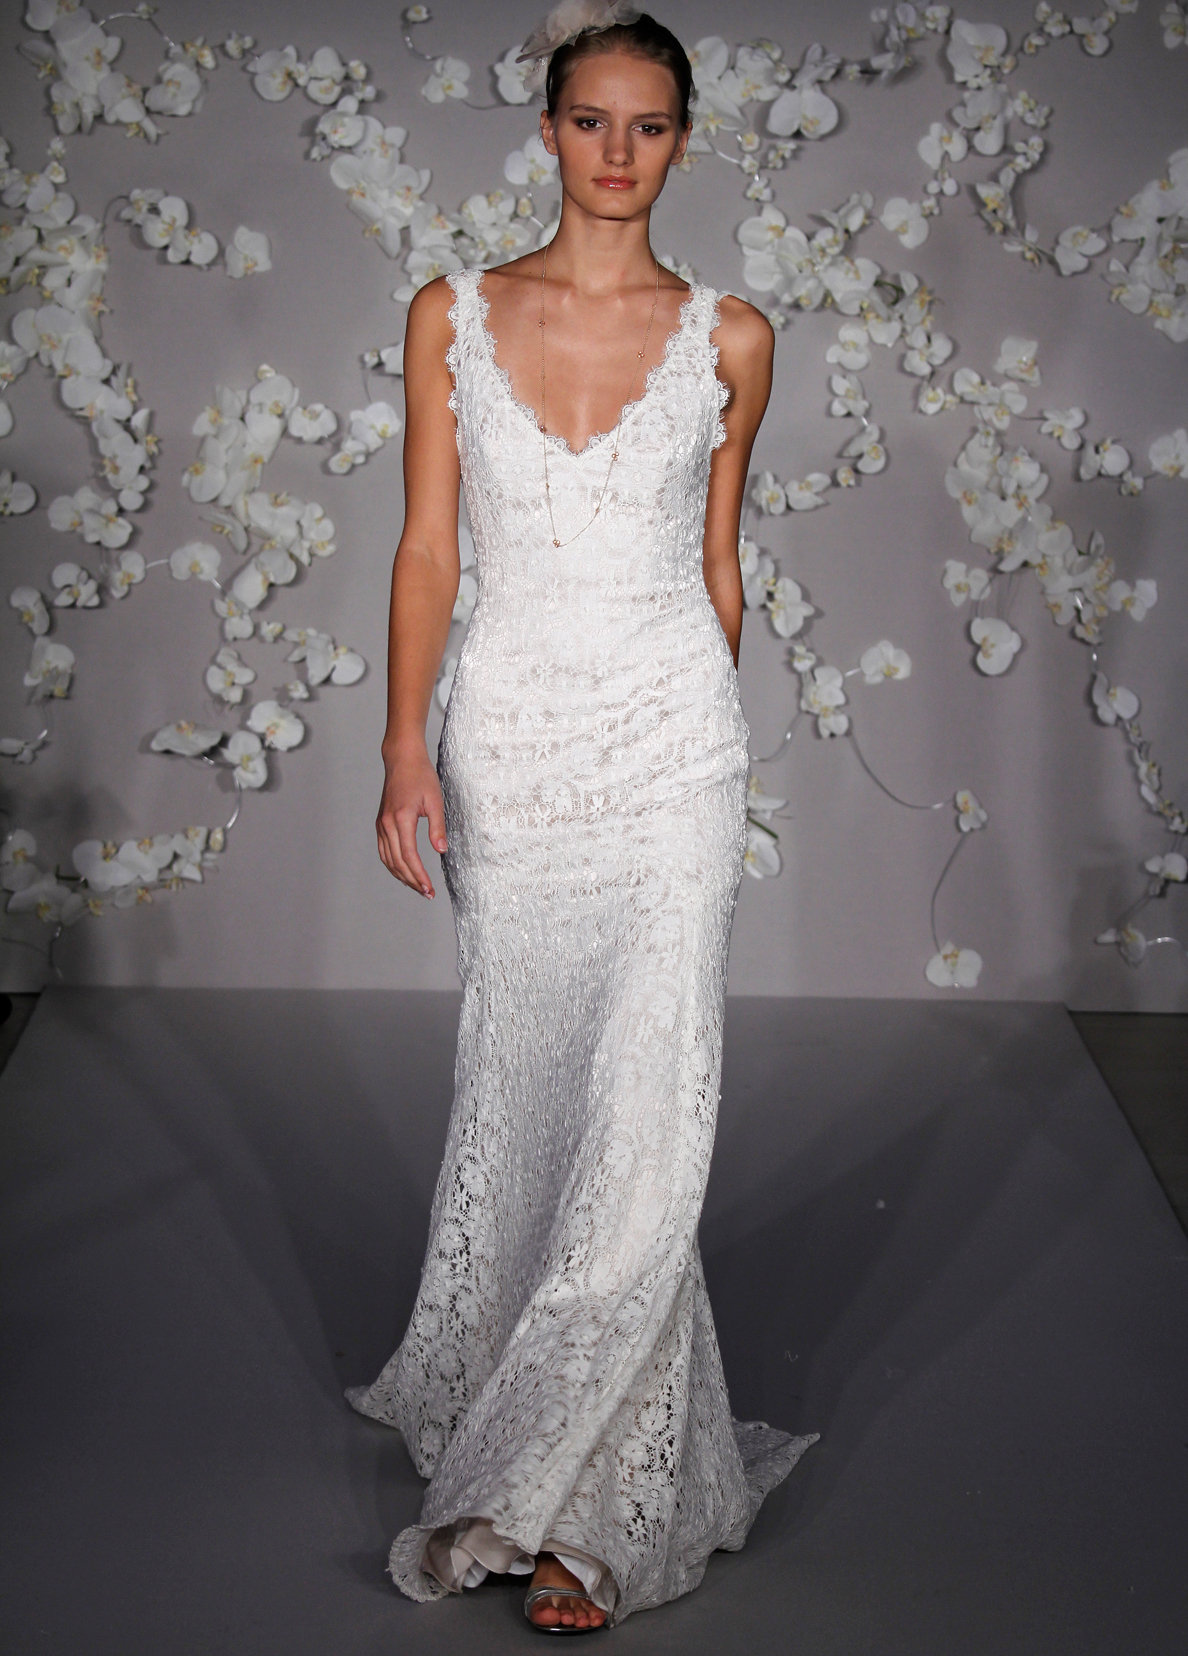 Bridal Gowns and Wedding Dresses by JLM Couture Style 1006